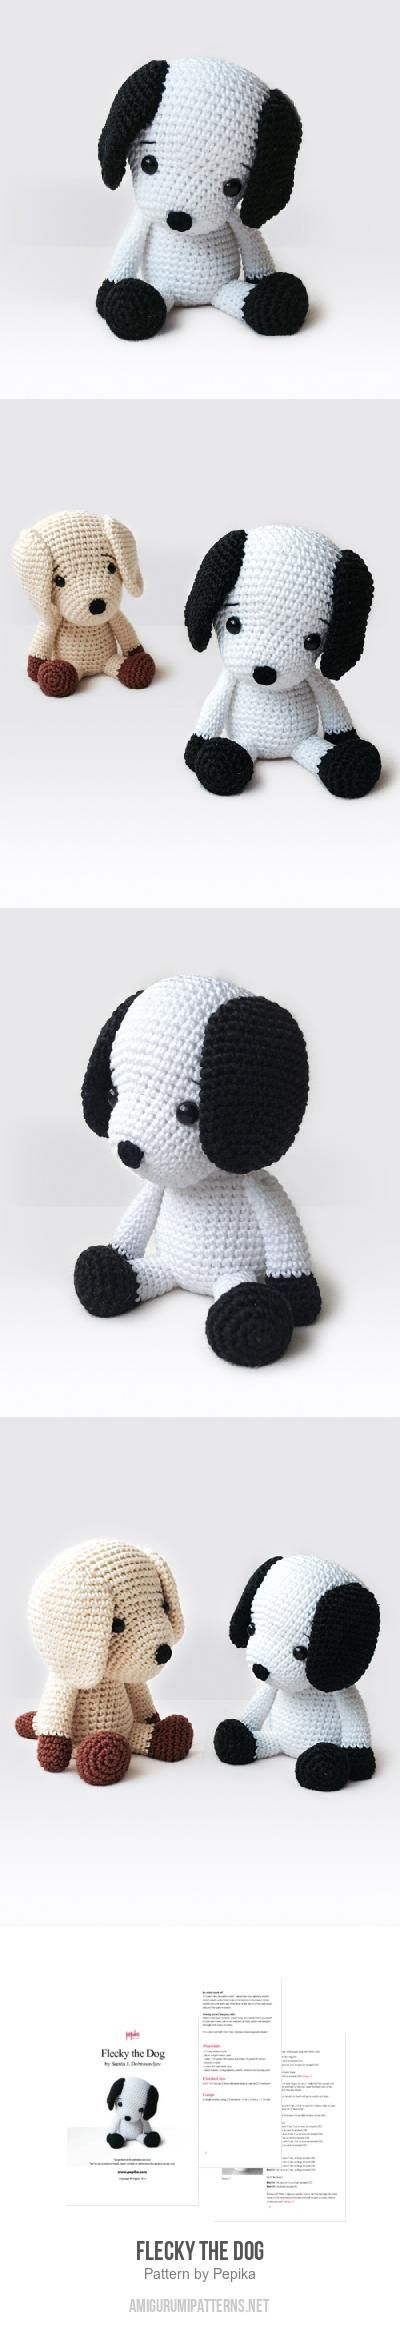 Flecky The Dog Amigurumi Pattern